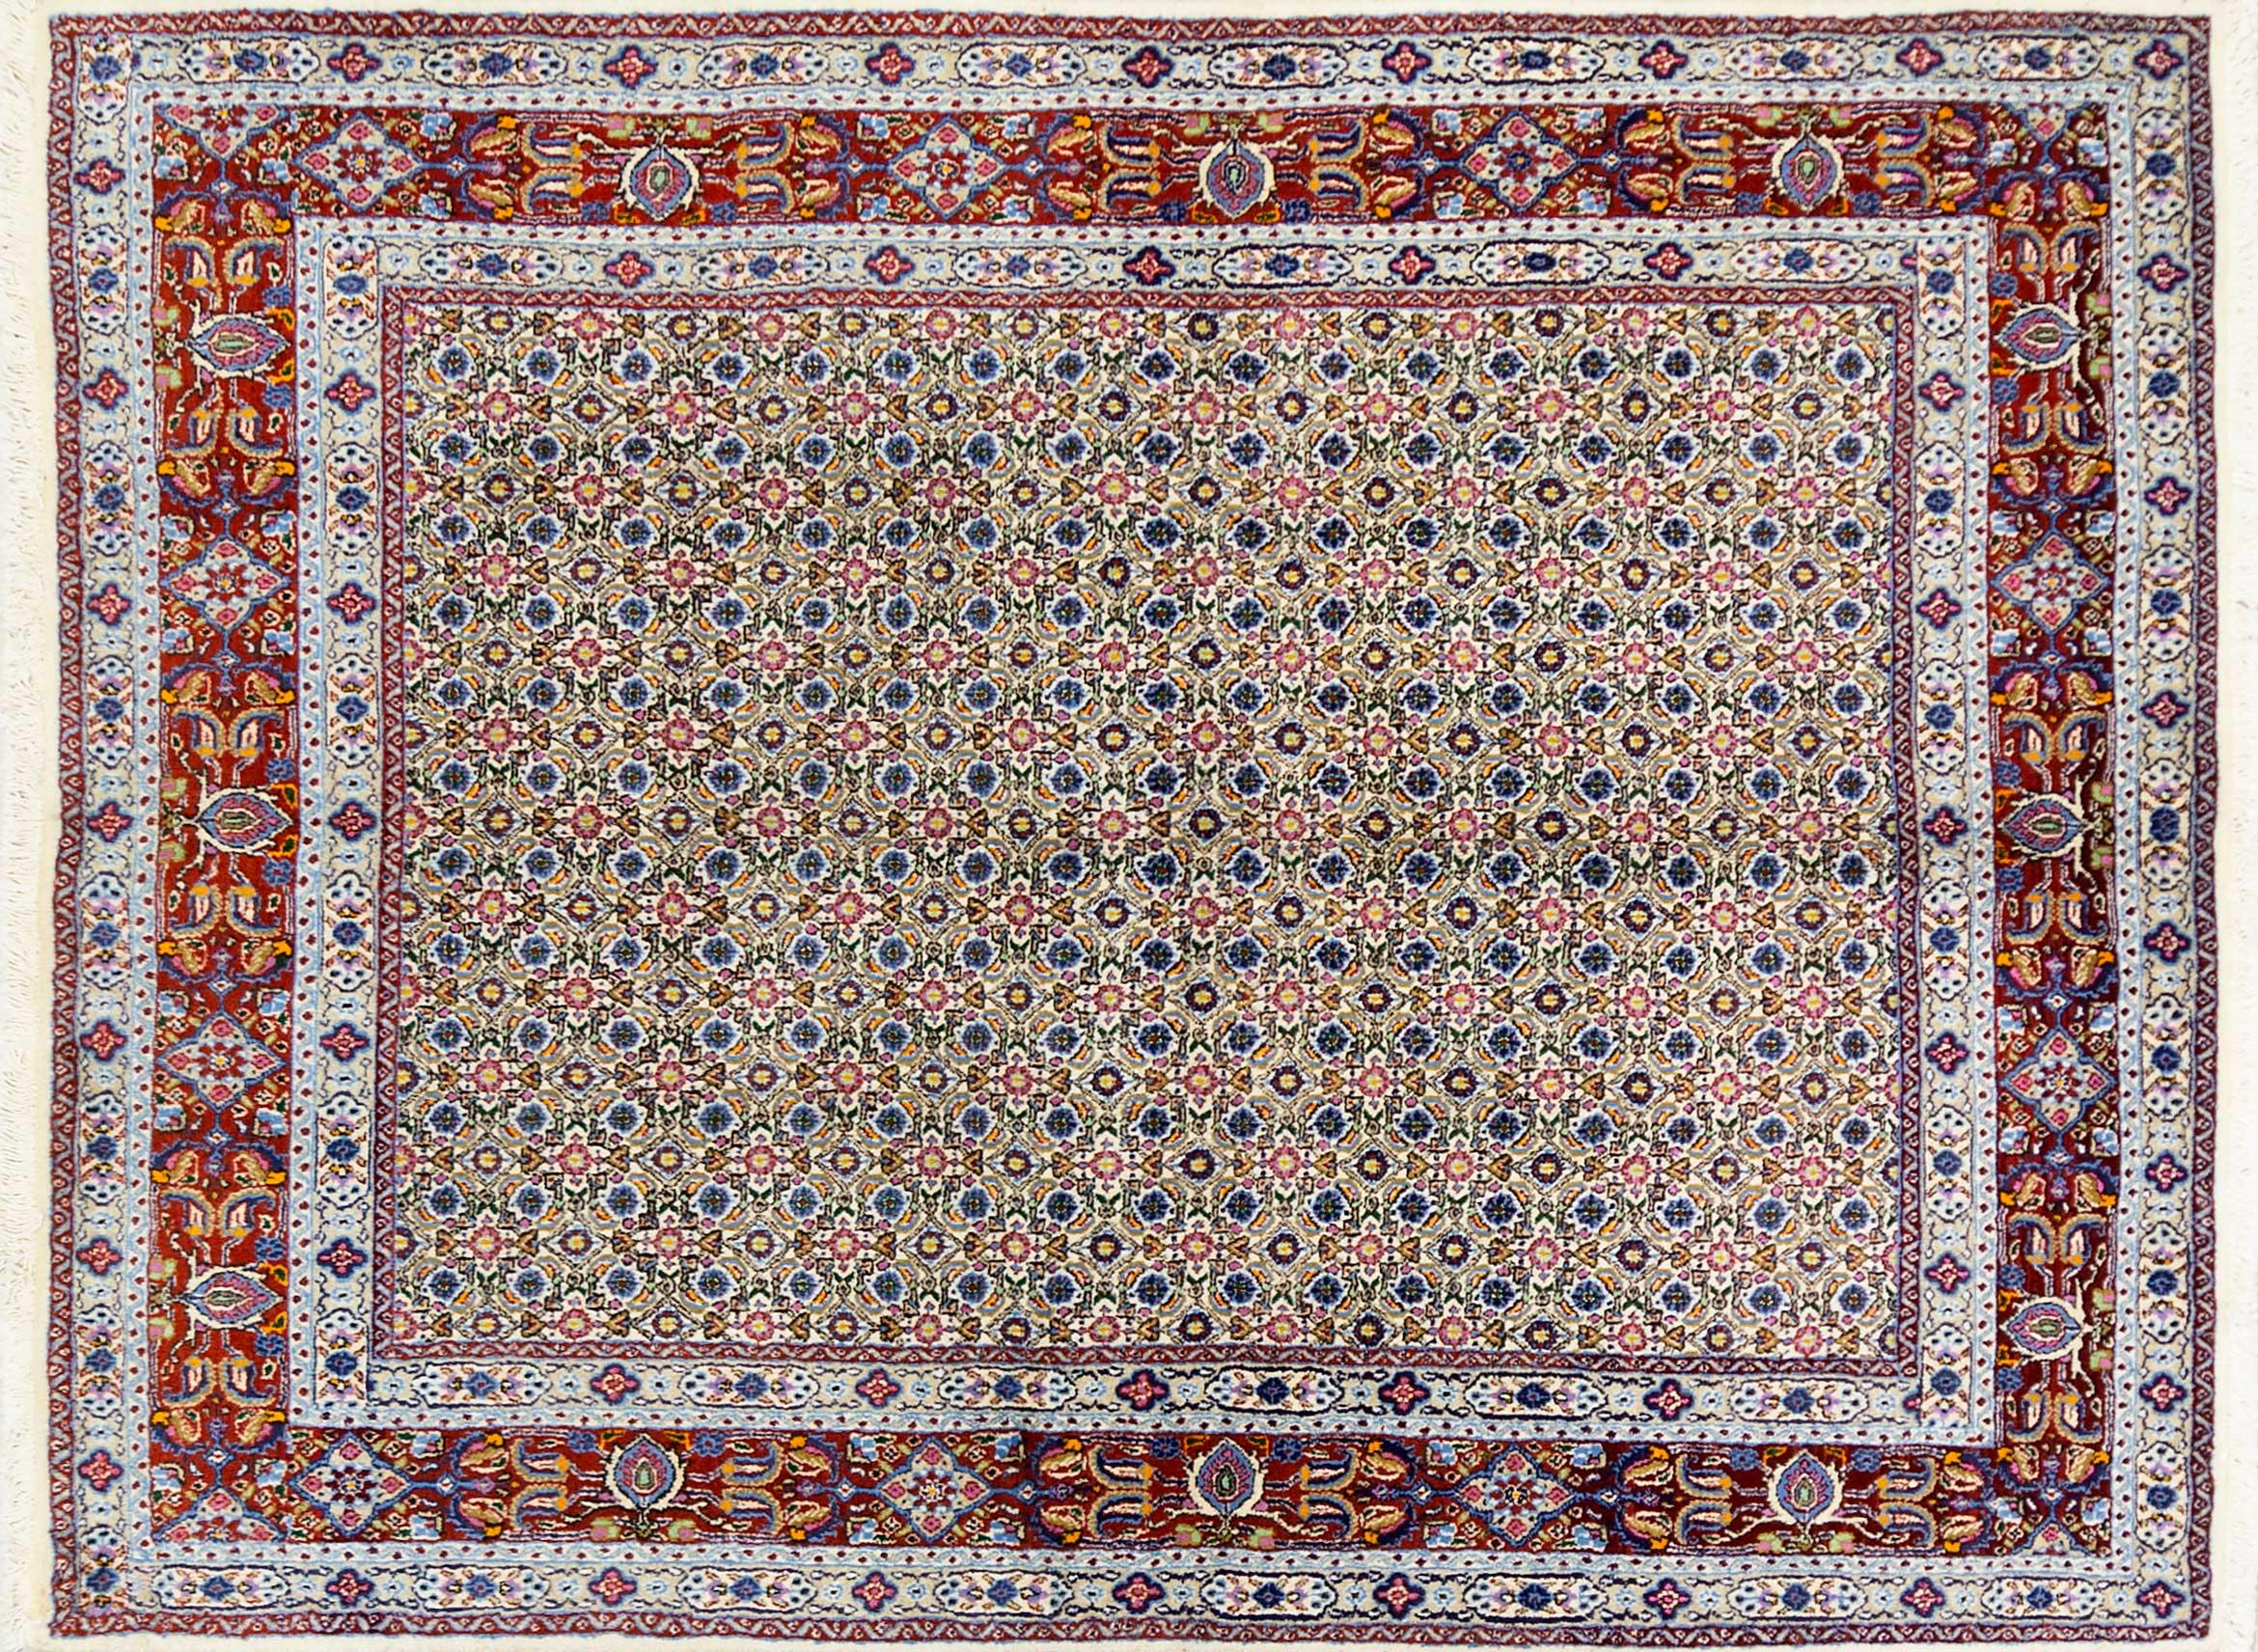 A Persian Hand Knotted Moud Rug, 195 x 148